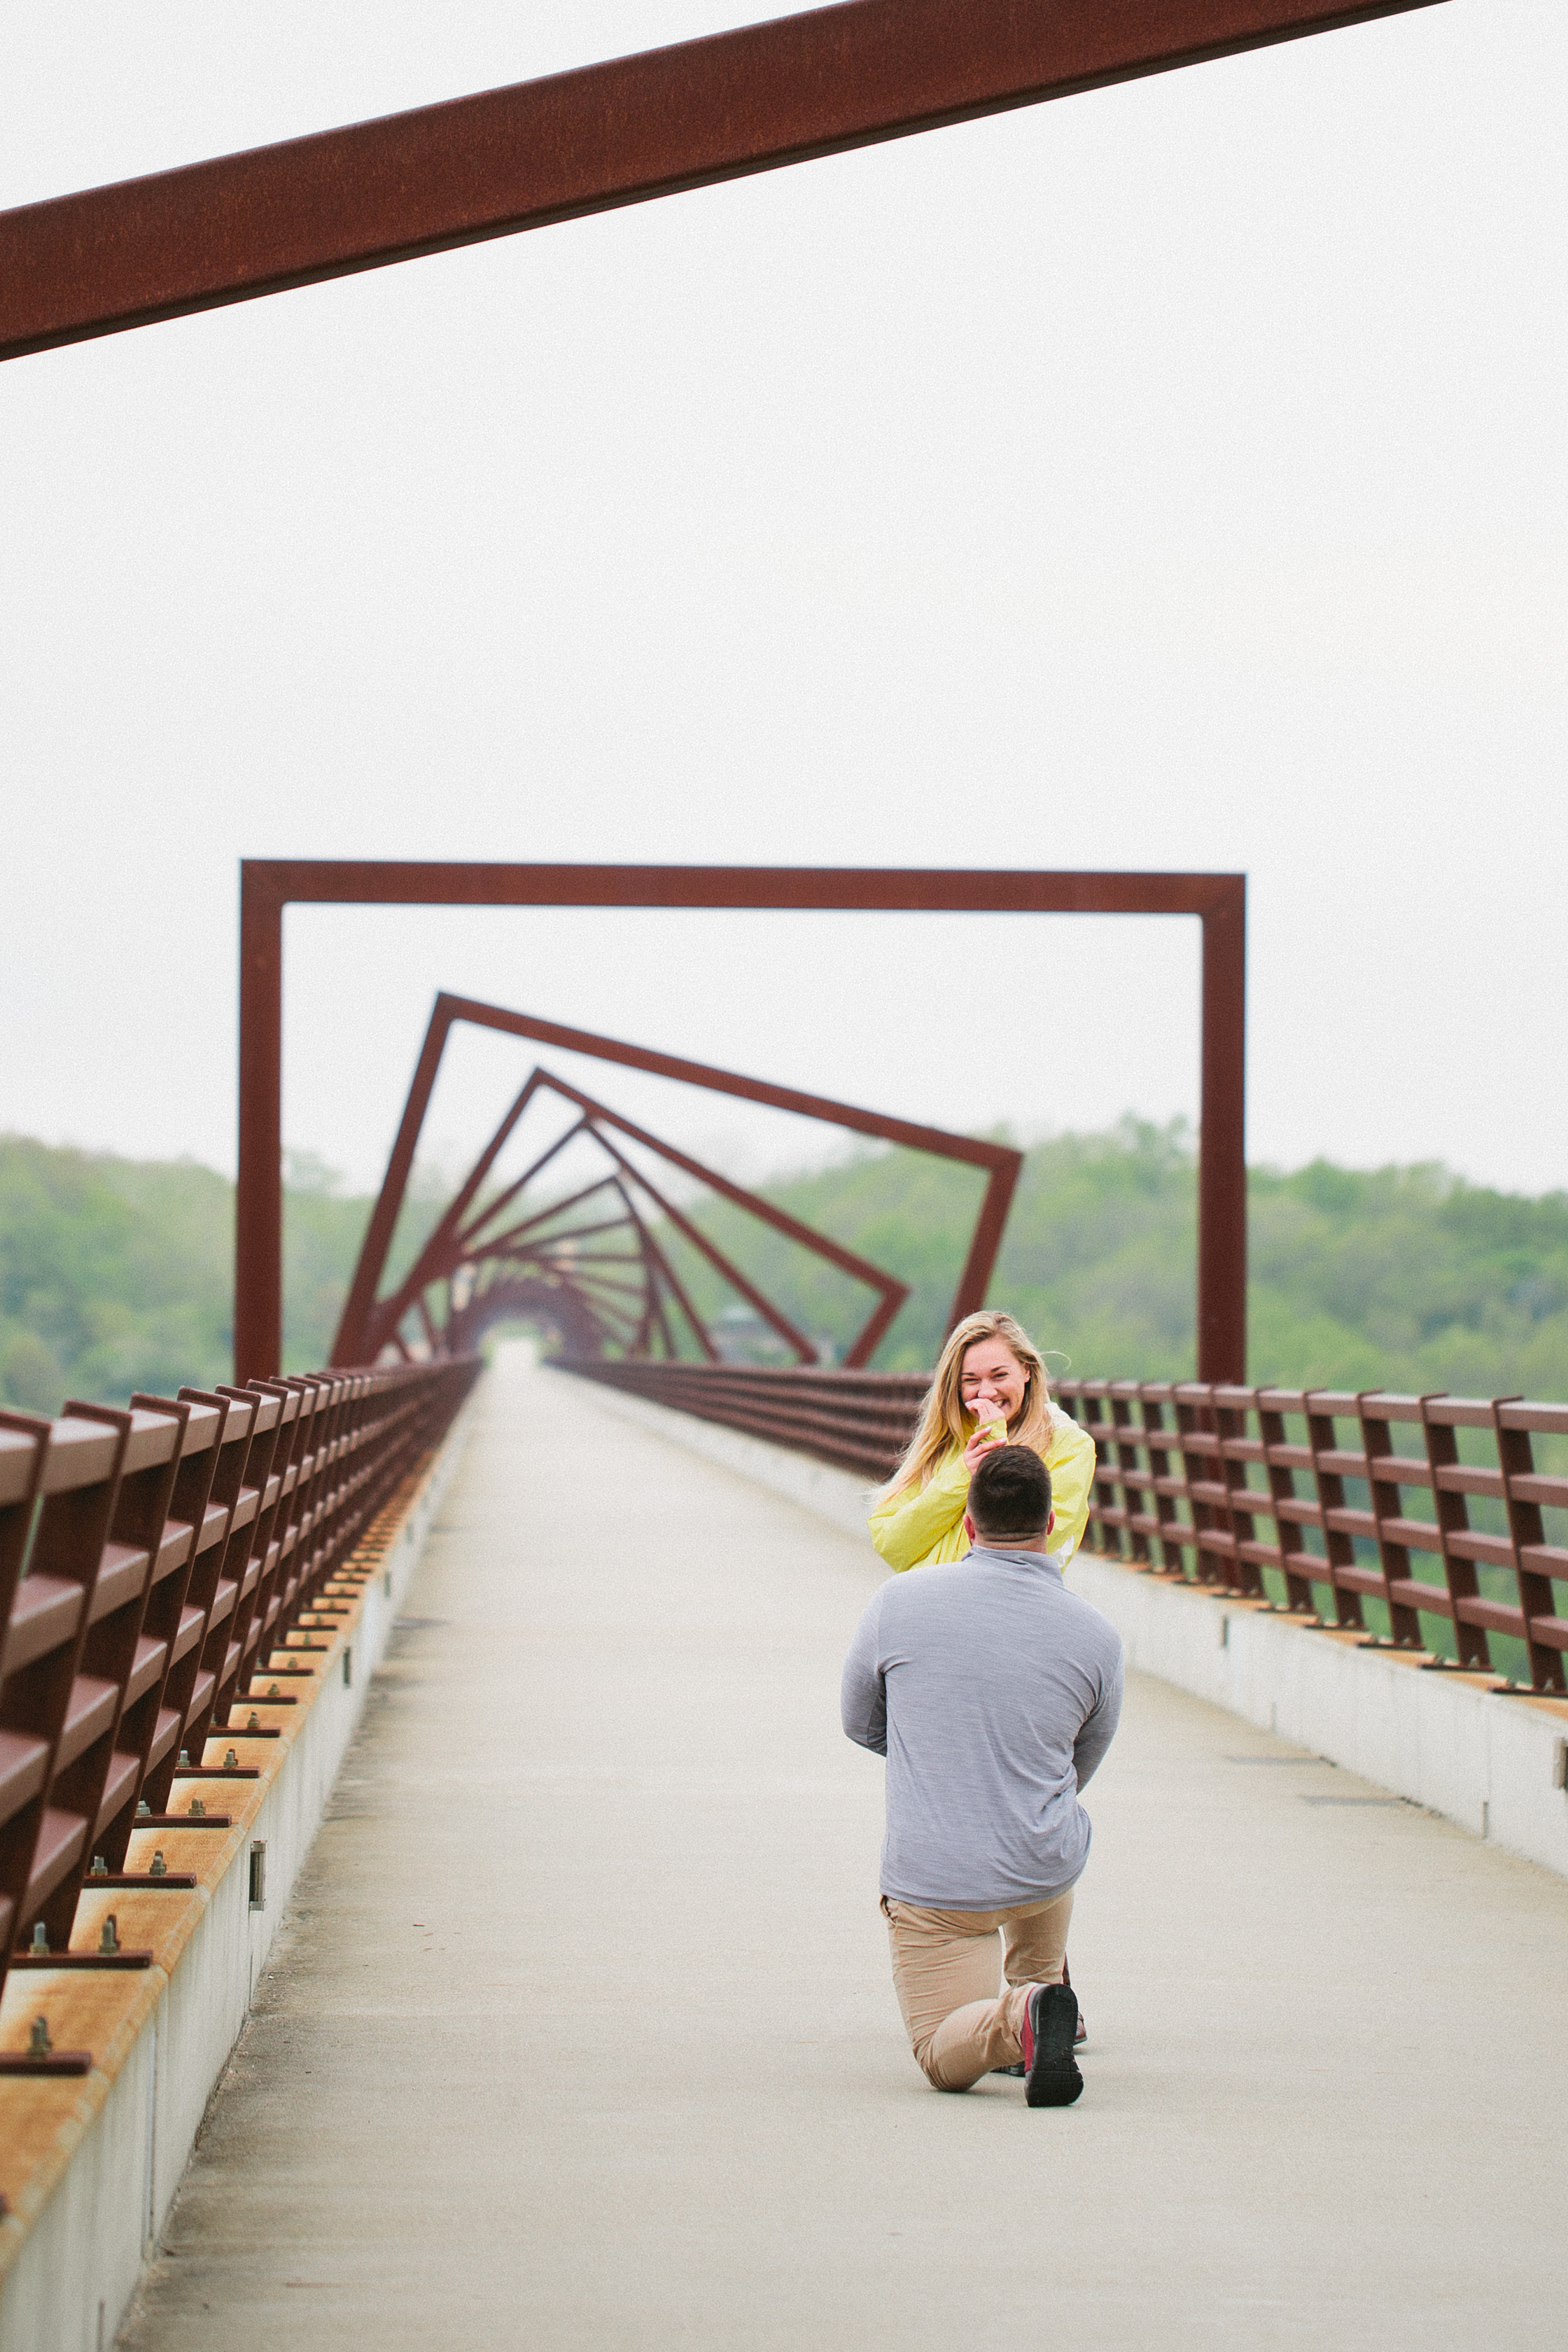 a spring marriage proposal at the high trestle trail bridge